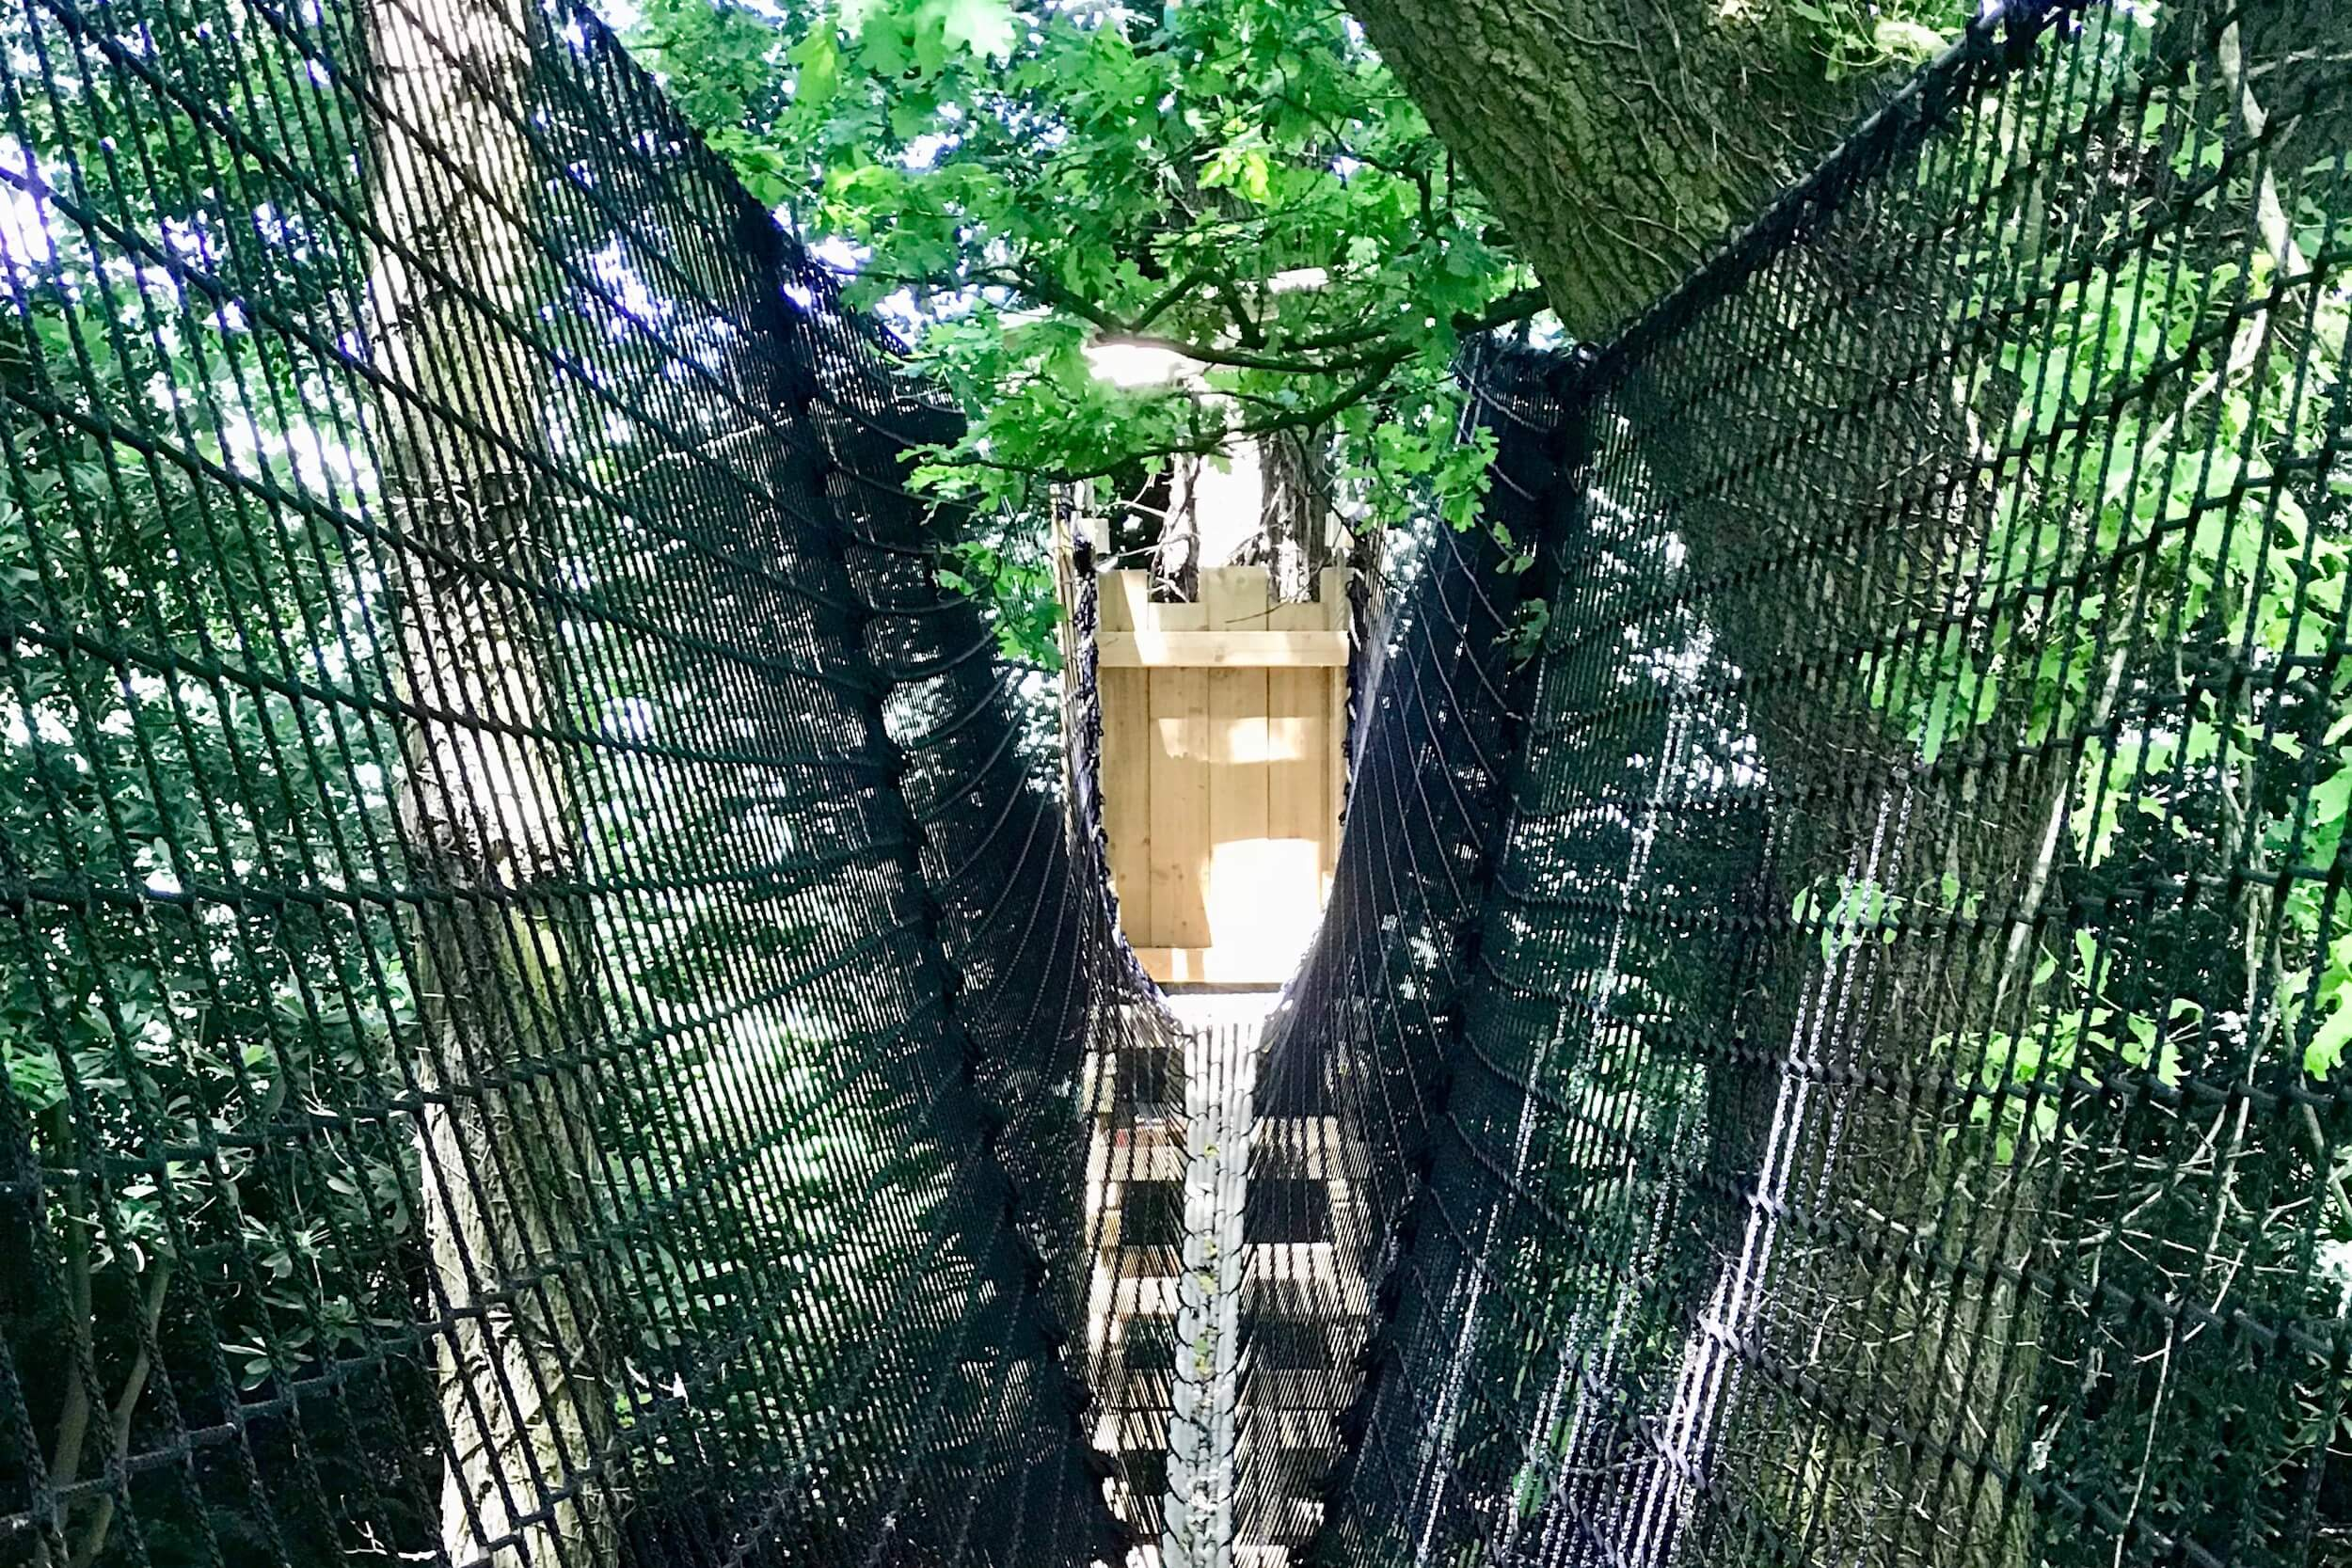 Tree-fort leading into Tree-top Walkway